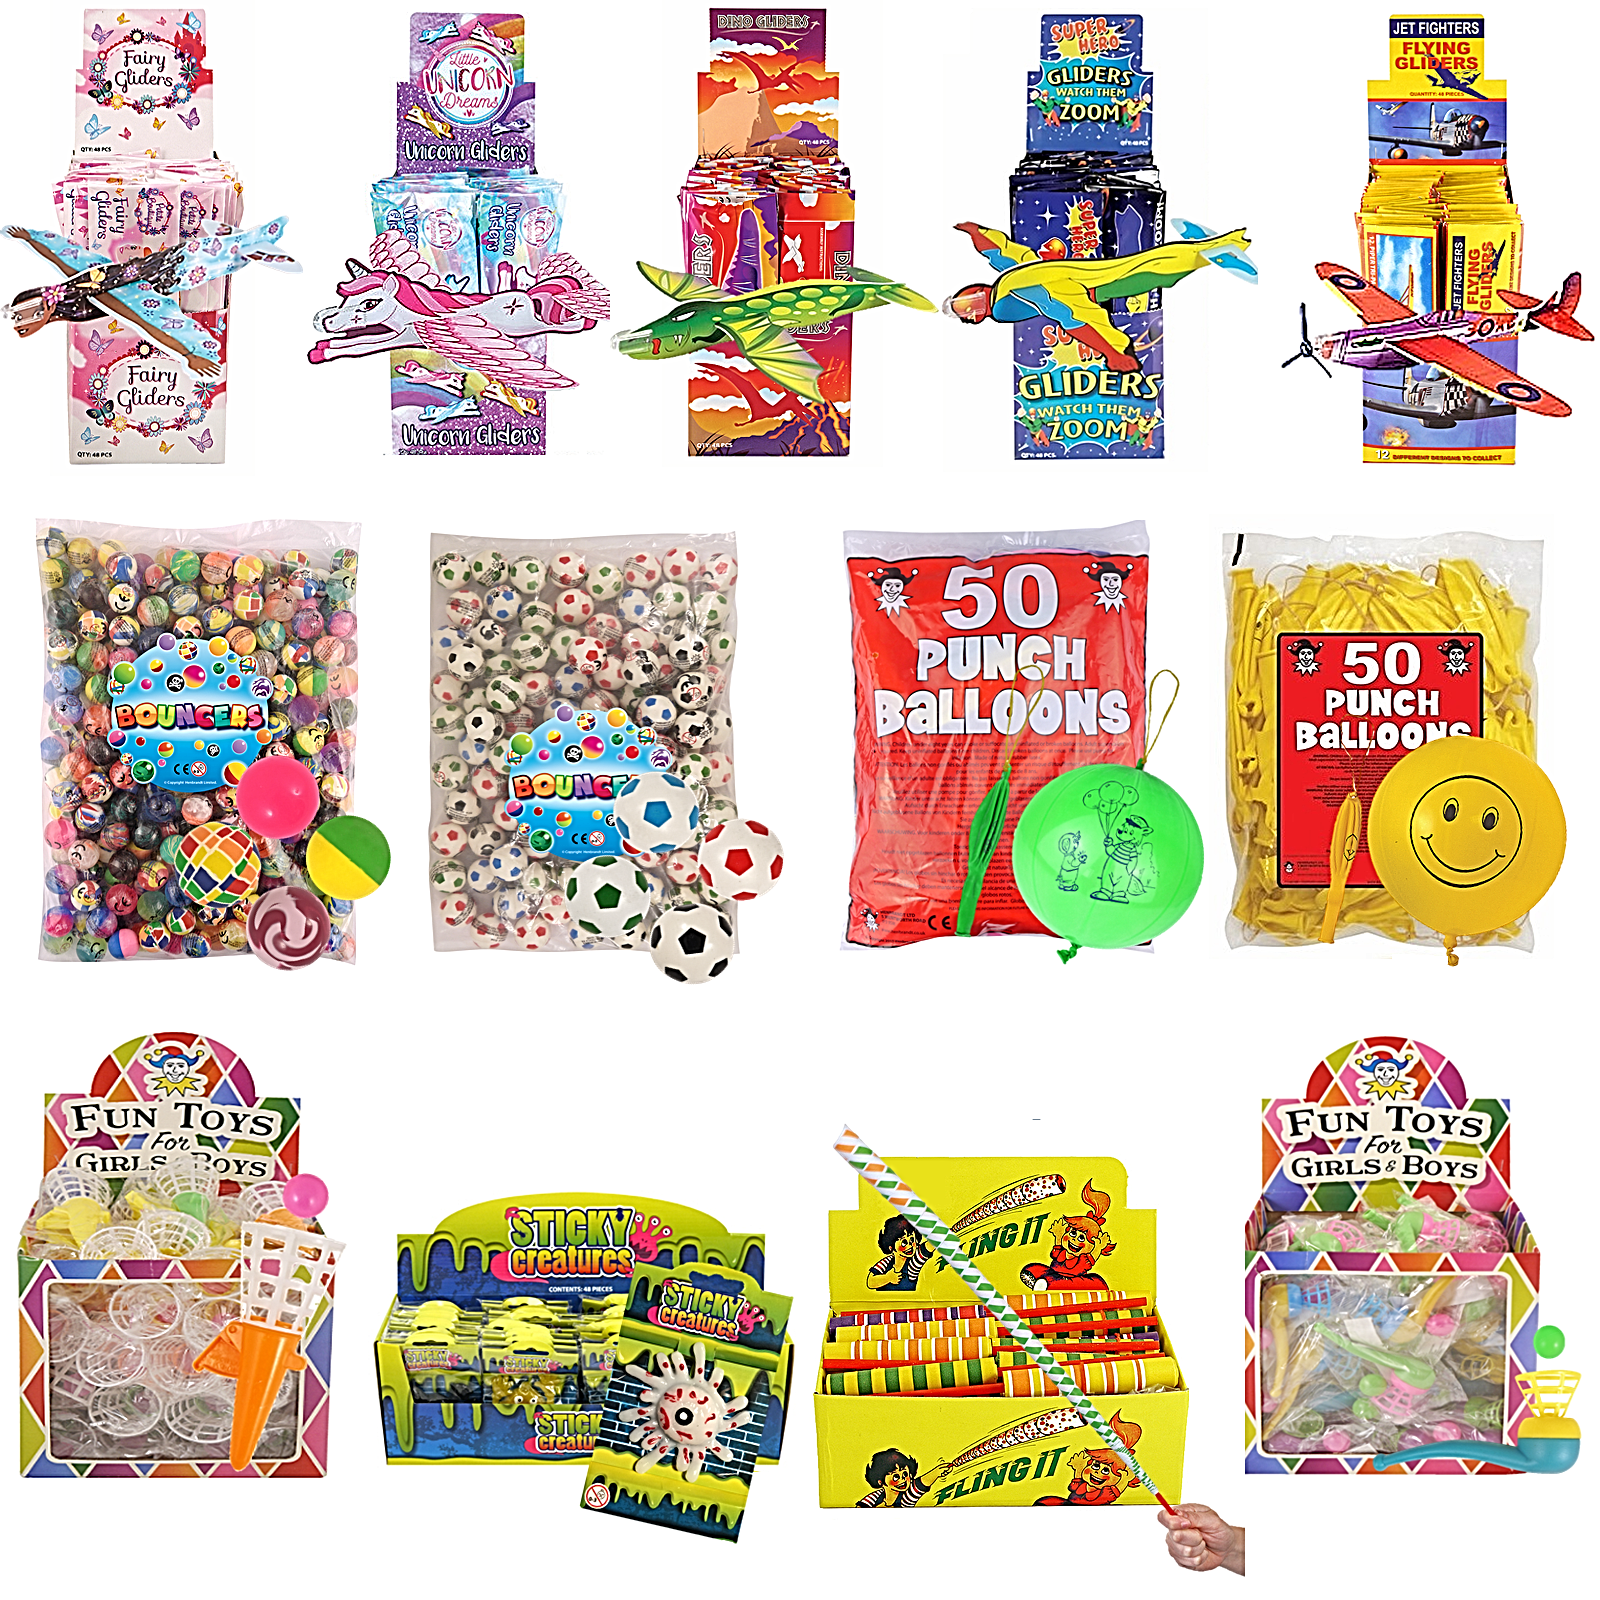 Bulk Buy Job Lot Wholesale Kids Toy Prizes Party Bag Fillers Xmas Fair PTA Event 2